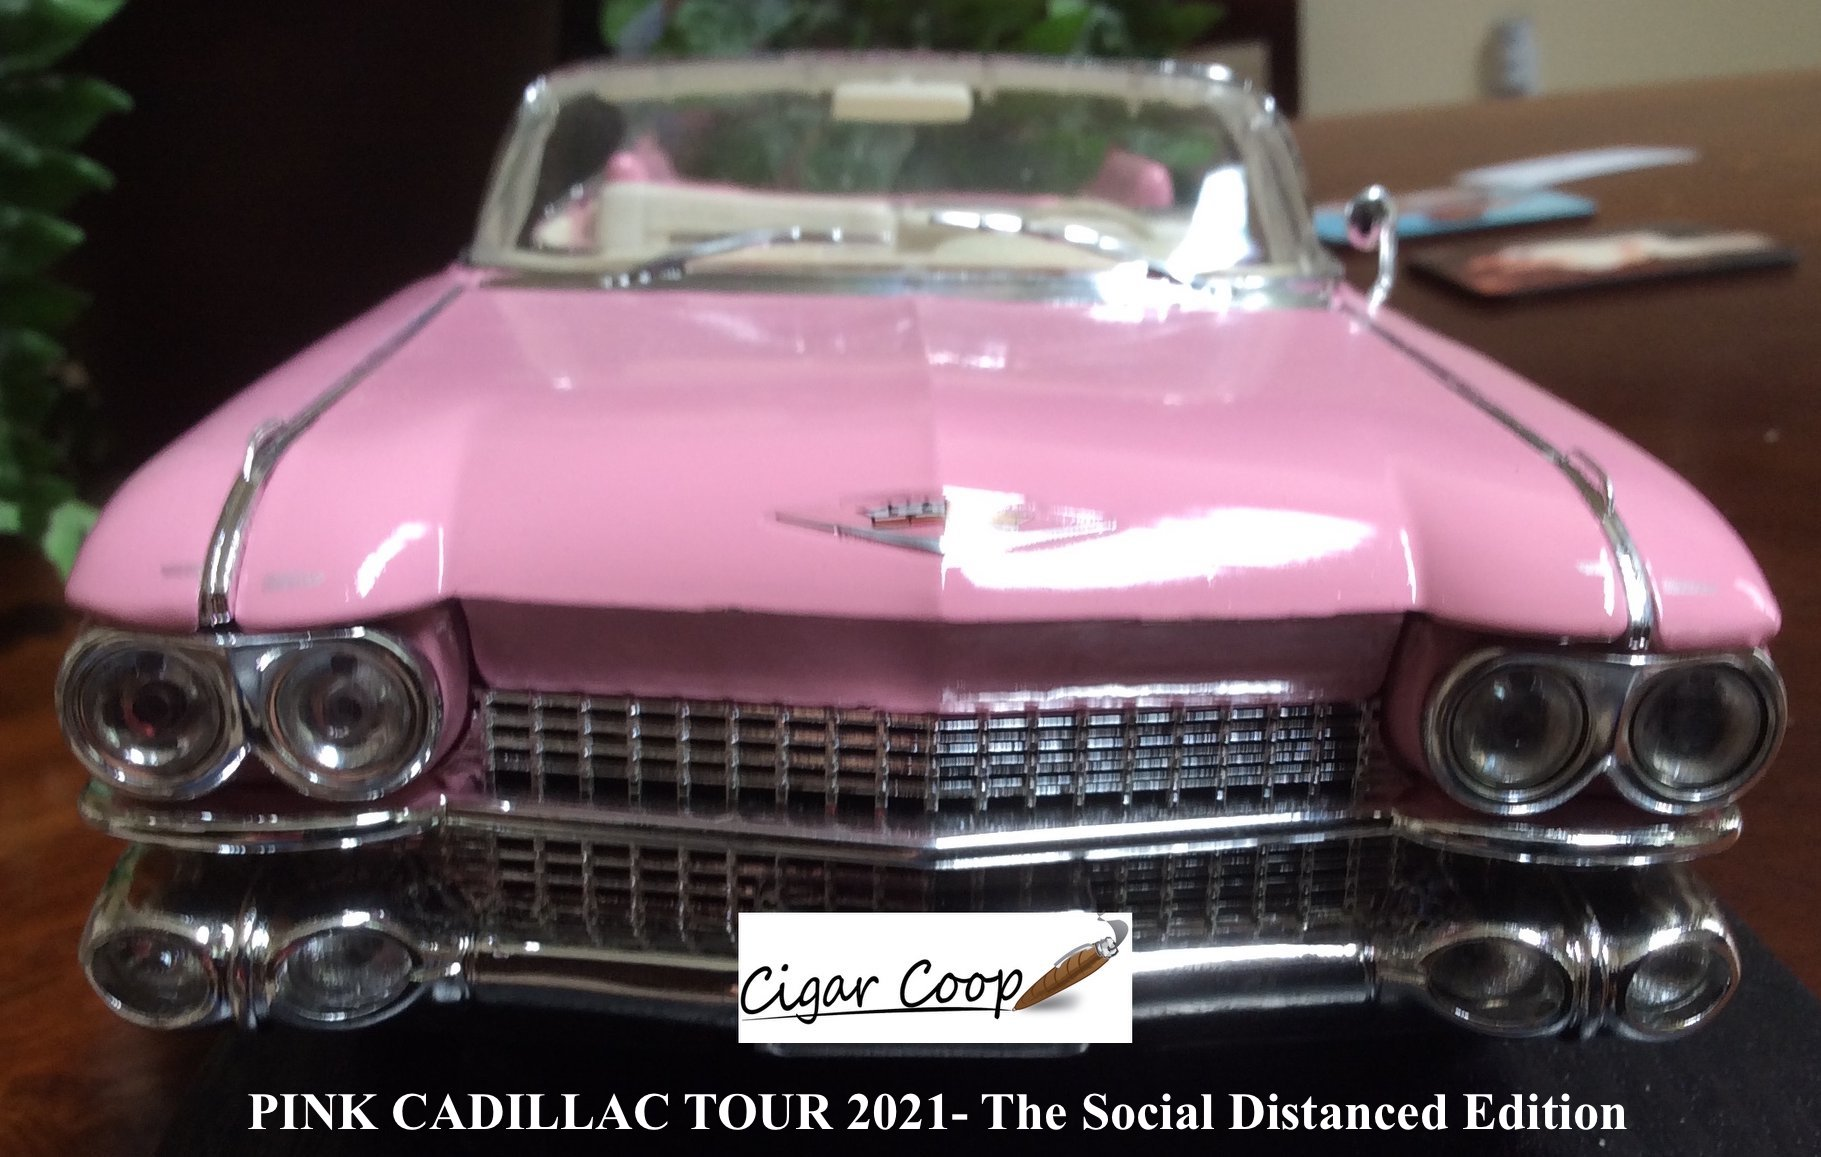 The Blog: Pink Cadillac Tour 2021 – The Social Distanced Edition Part 2: East Tennessee